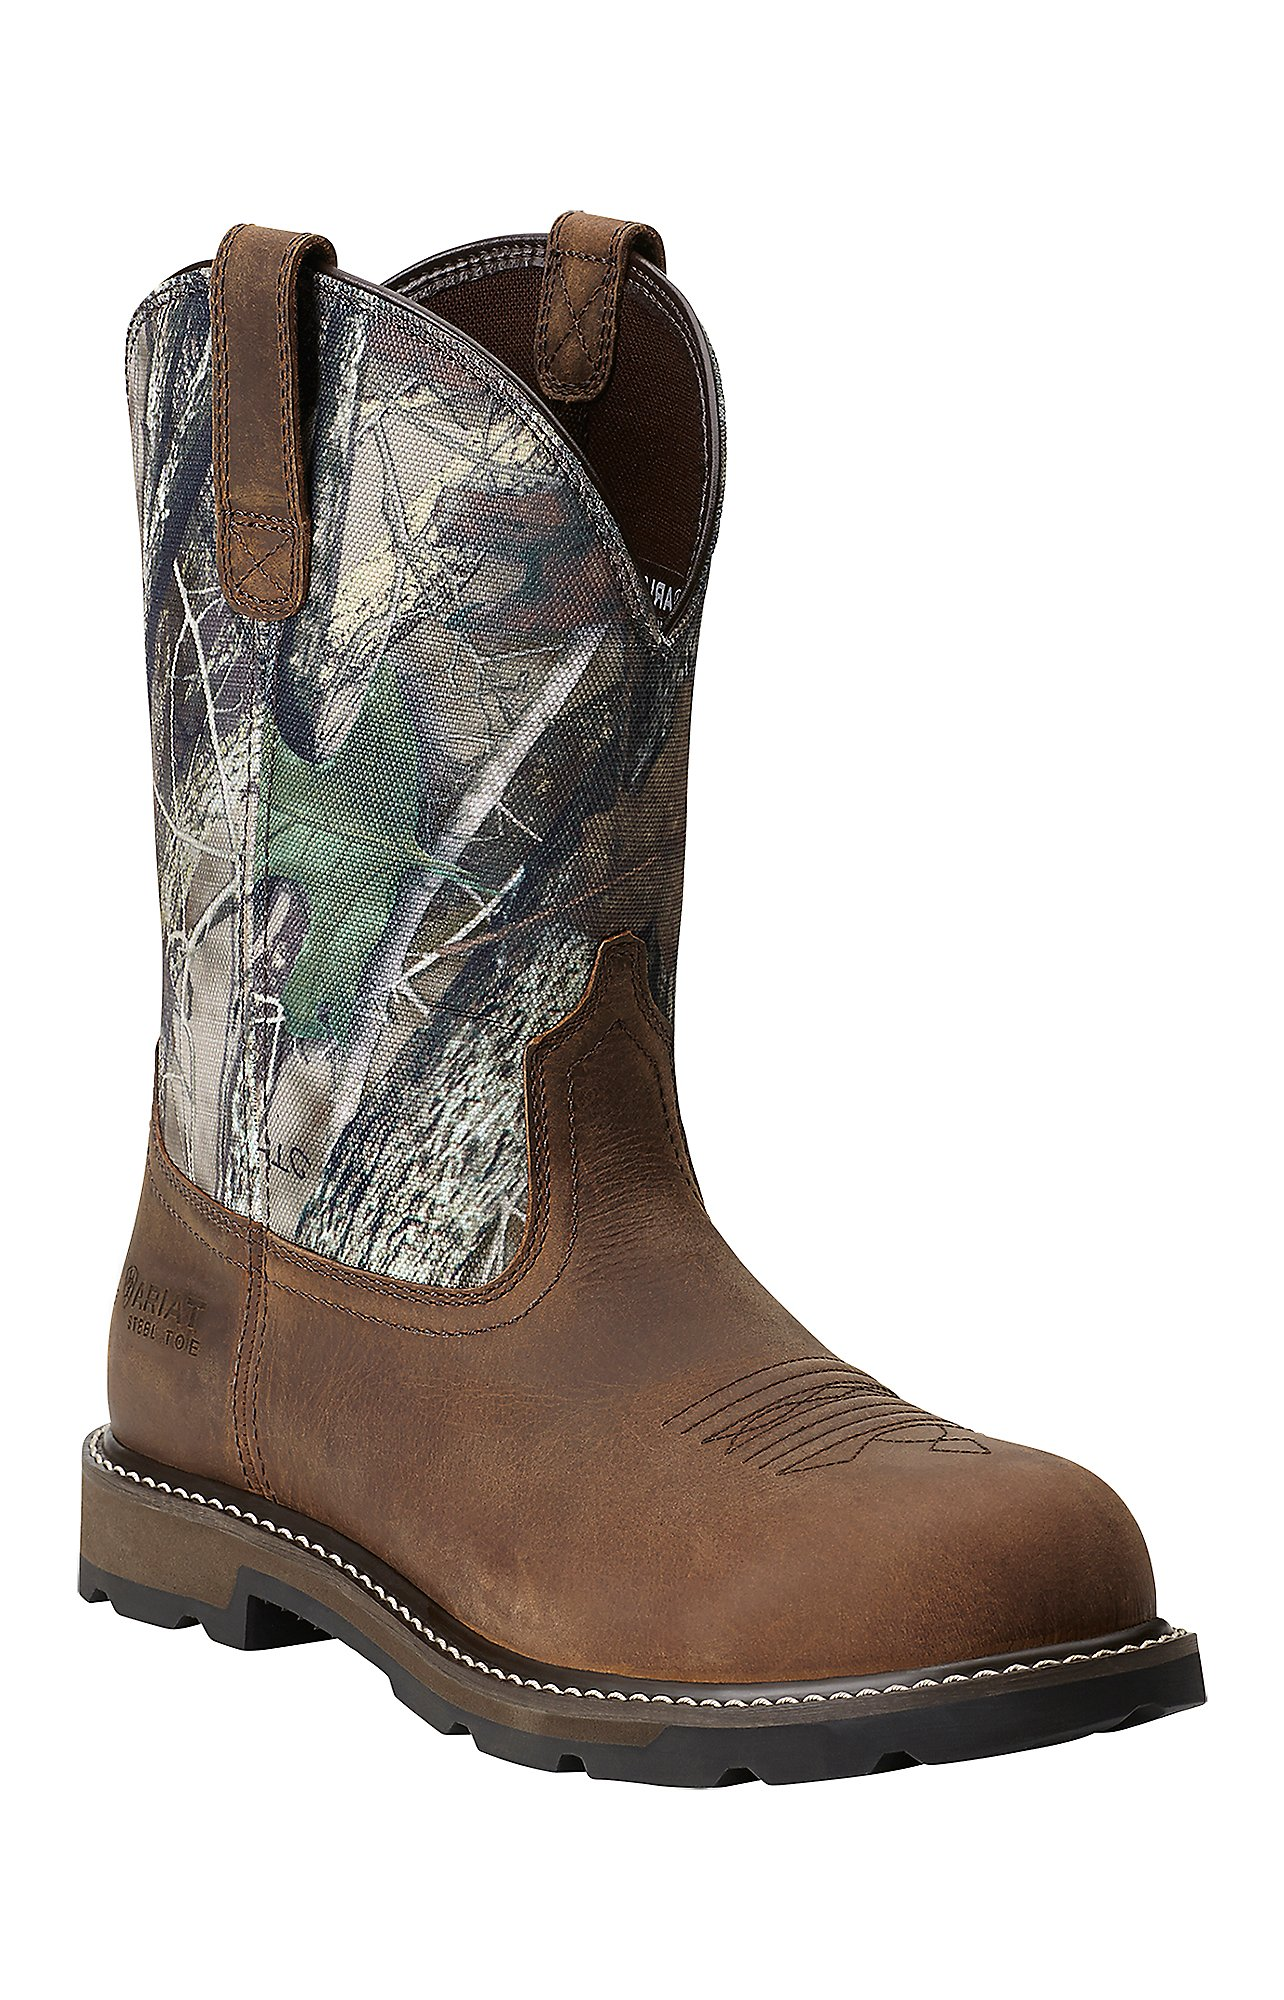 Ariat Groundbreaker Men's Distressed Brown with Camo Top Steel Toe ...